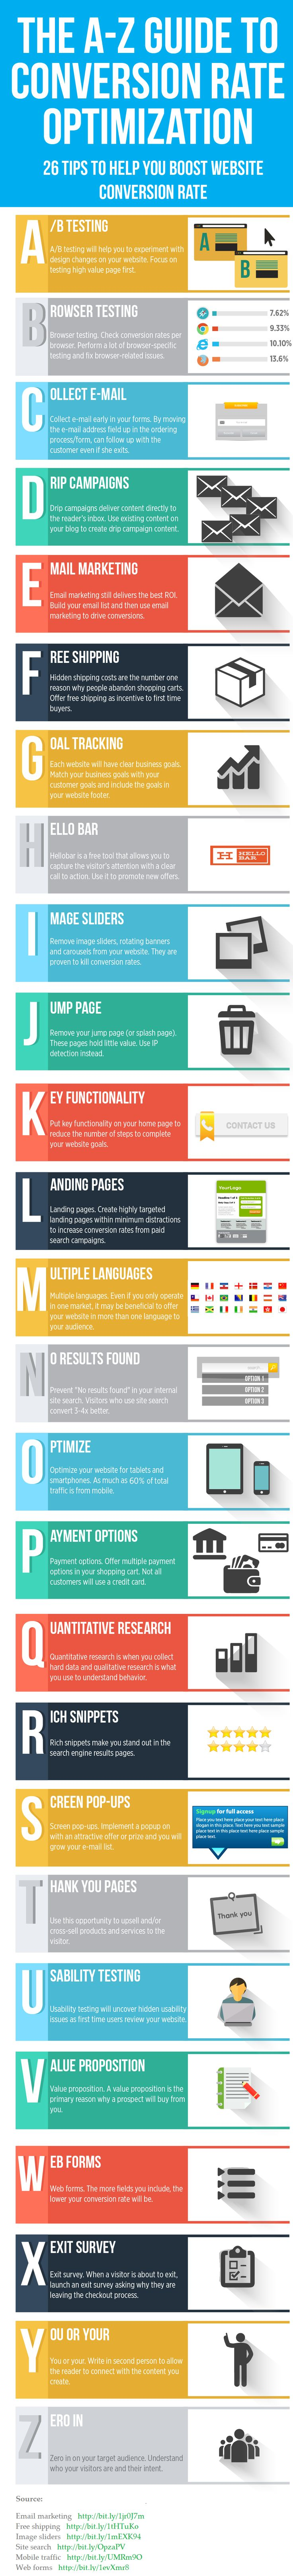 Infographic: A to Z guide to Conversion Rate Optimization:  This A to Z guide to Conversion Rate Optimization infographic provides you with 26 specific improvements that will help you improve user experience, conversion rate and your online sales.